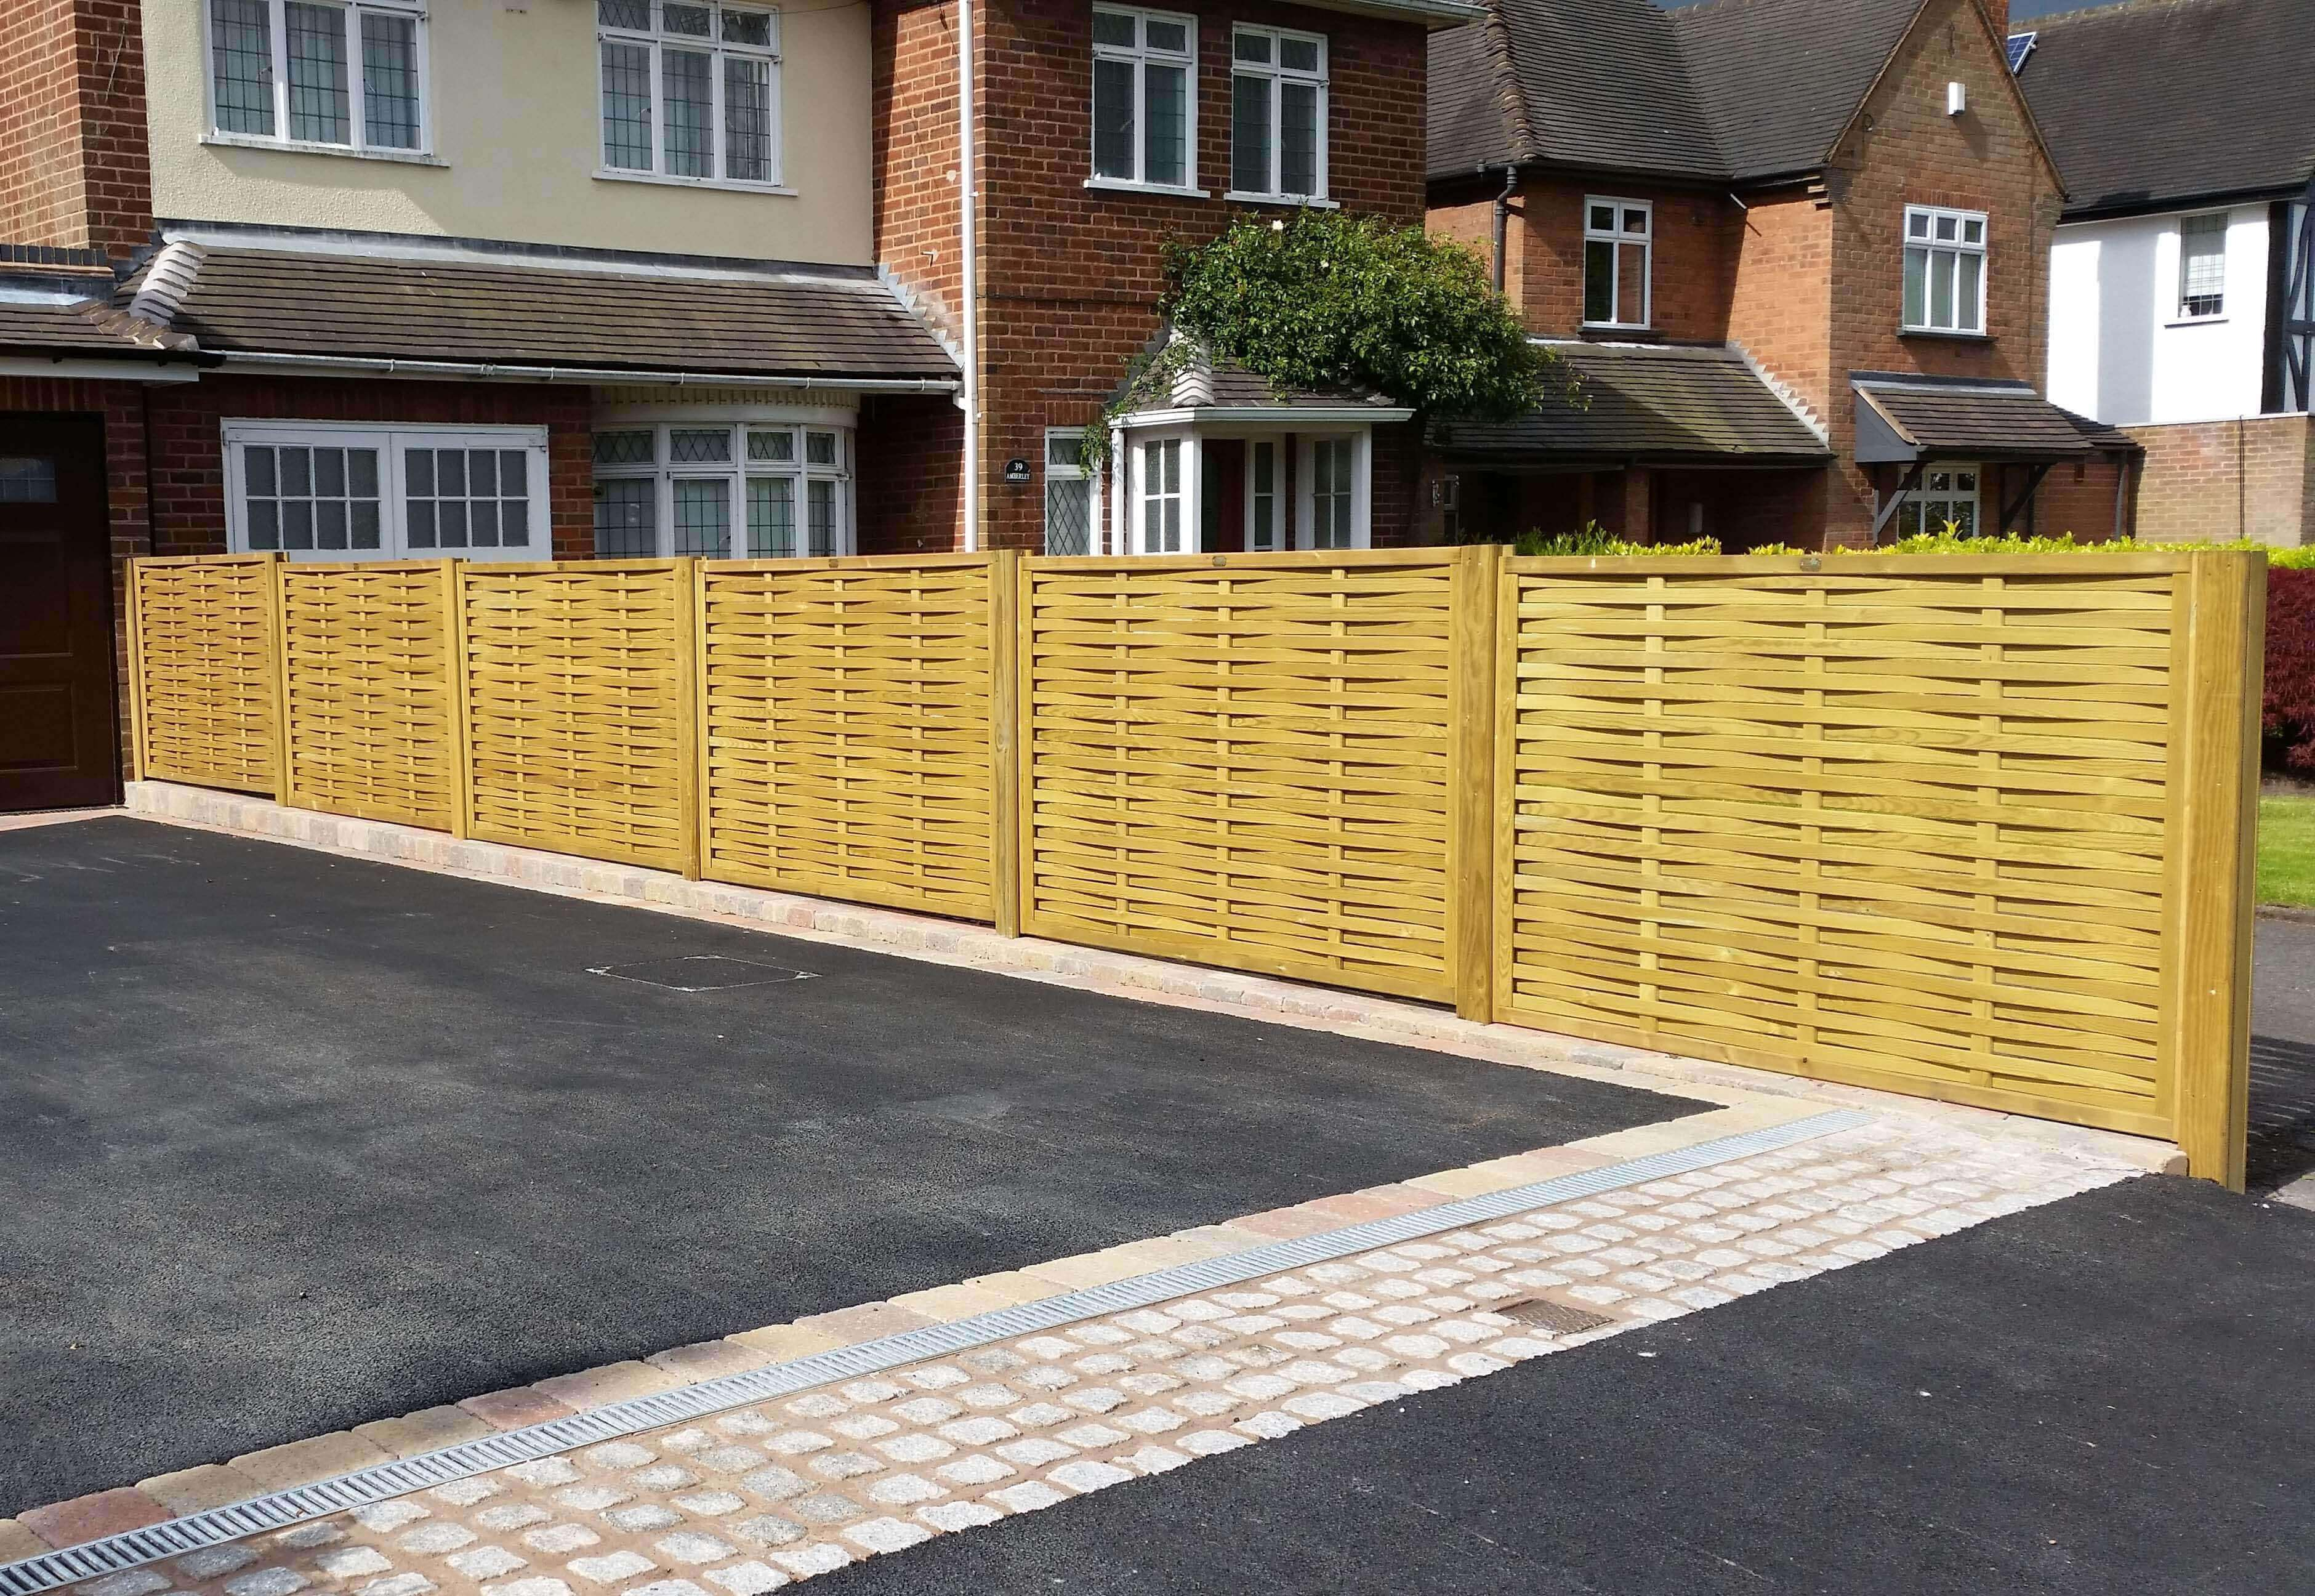 Driveway complete with woven fence panels